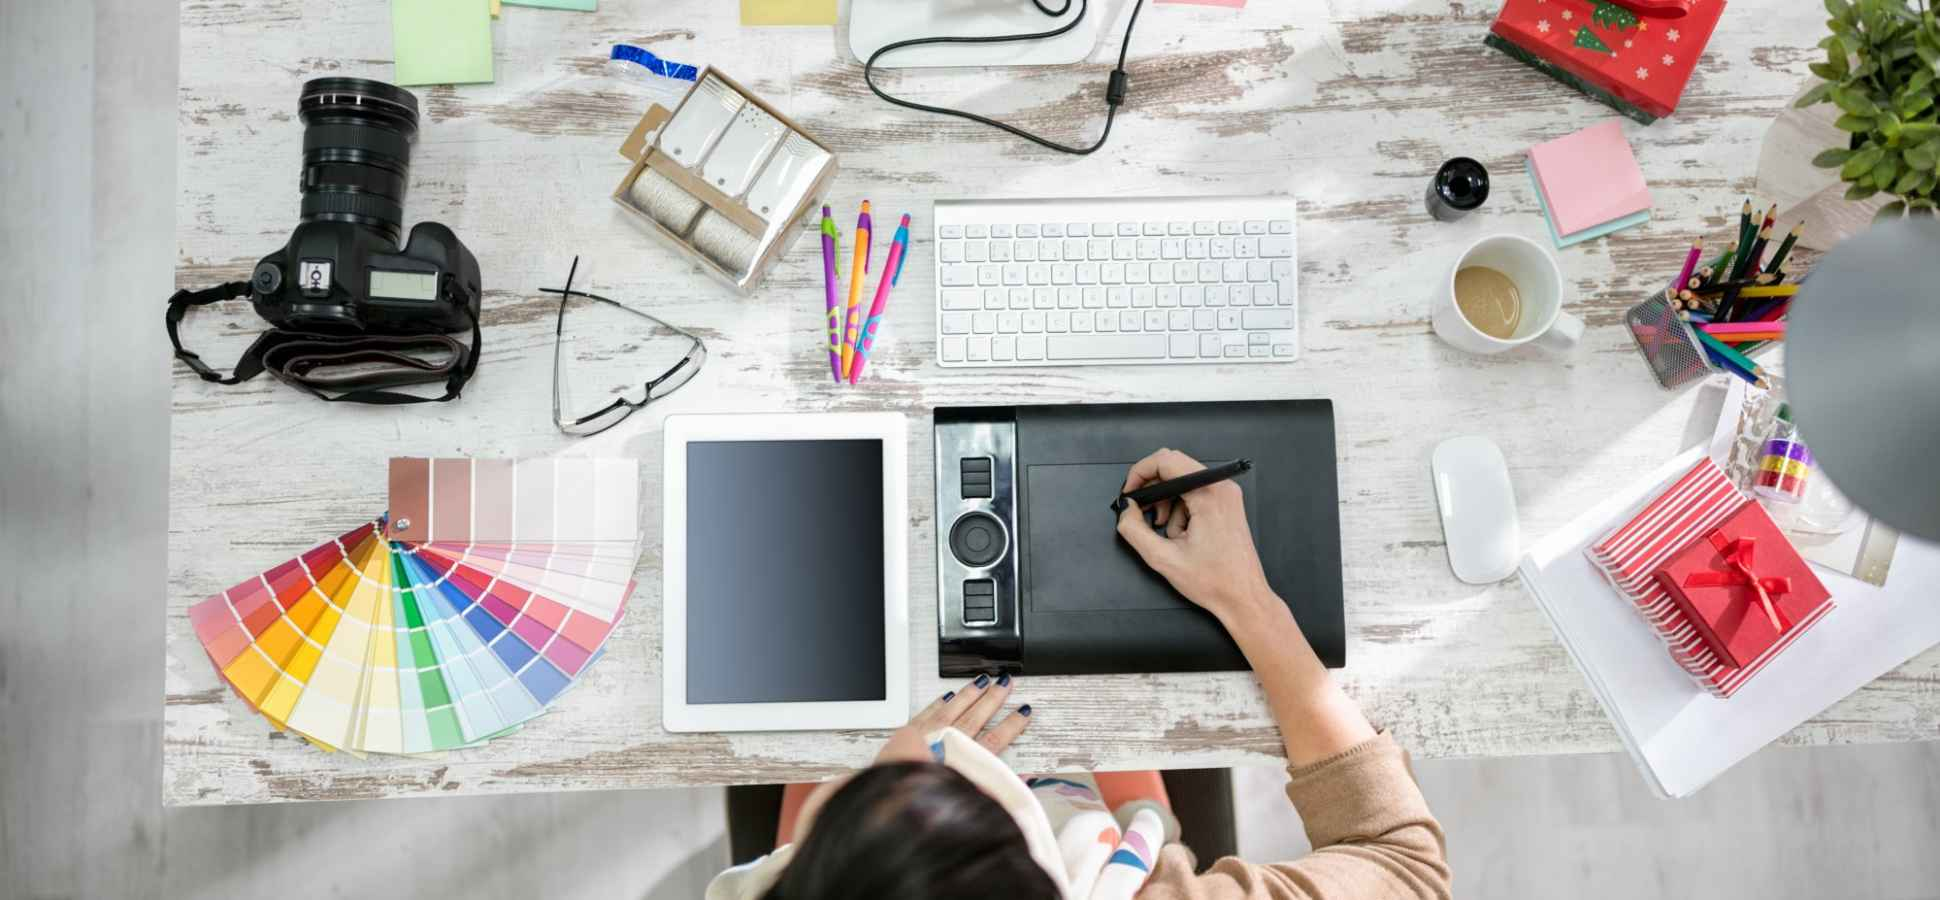 How to be Consistently Creative, According to Research